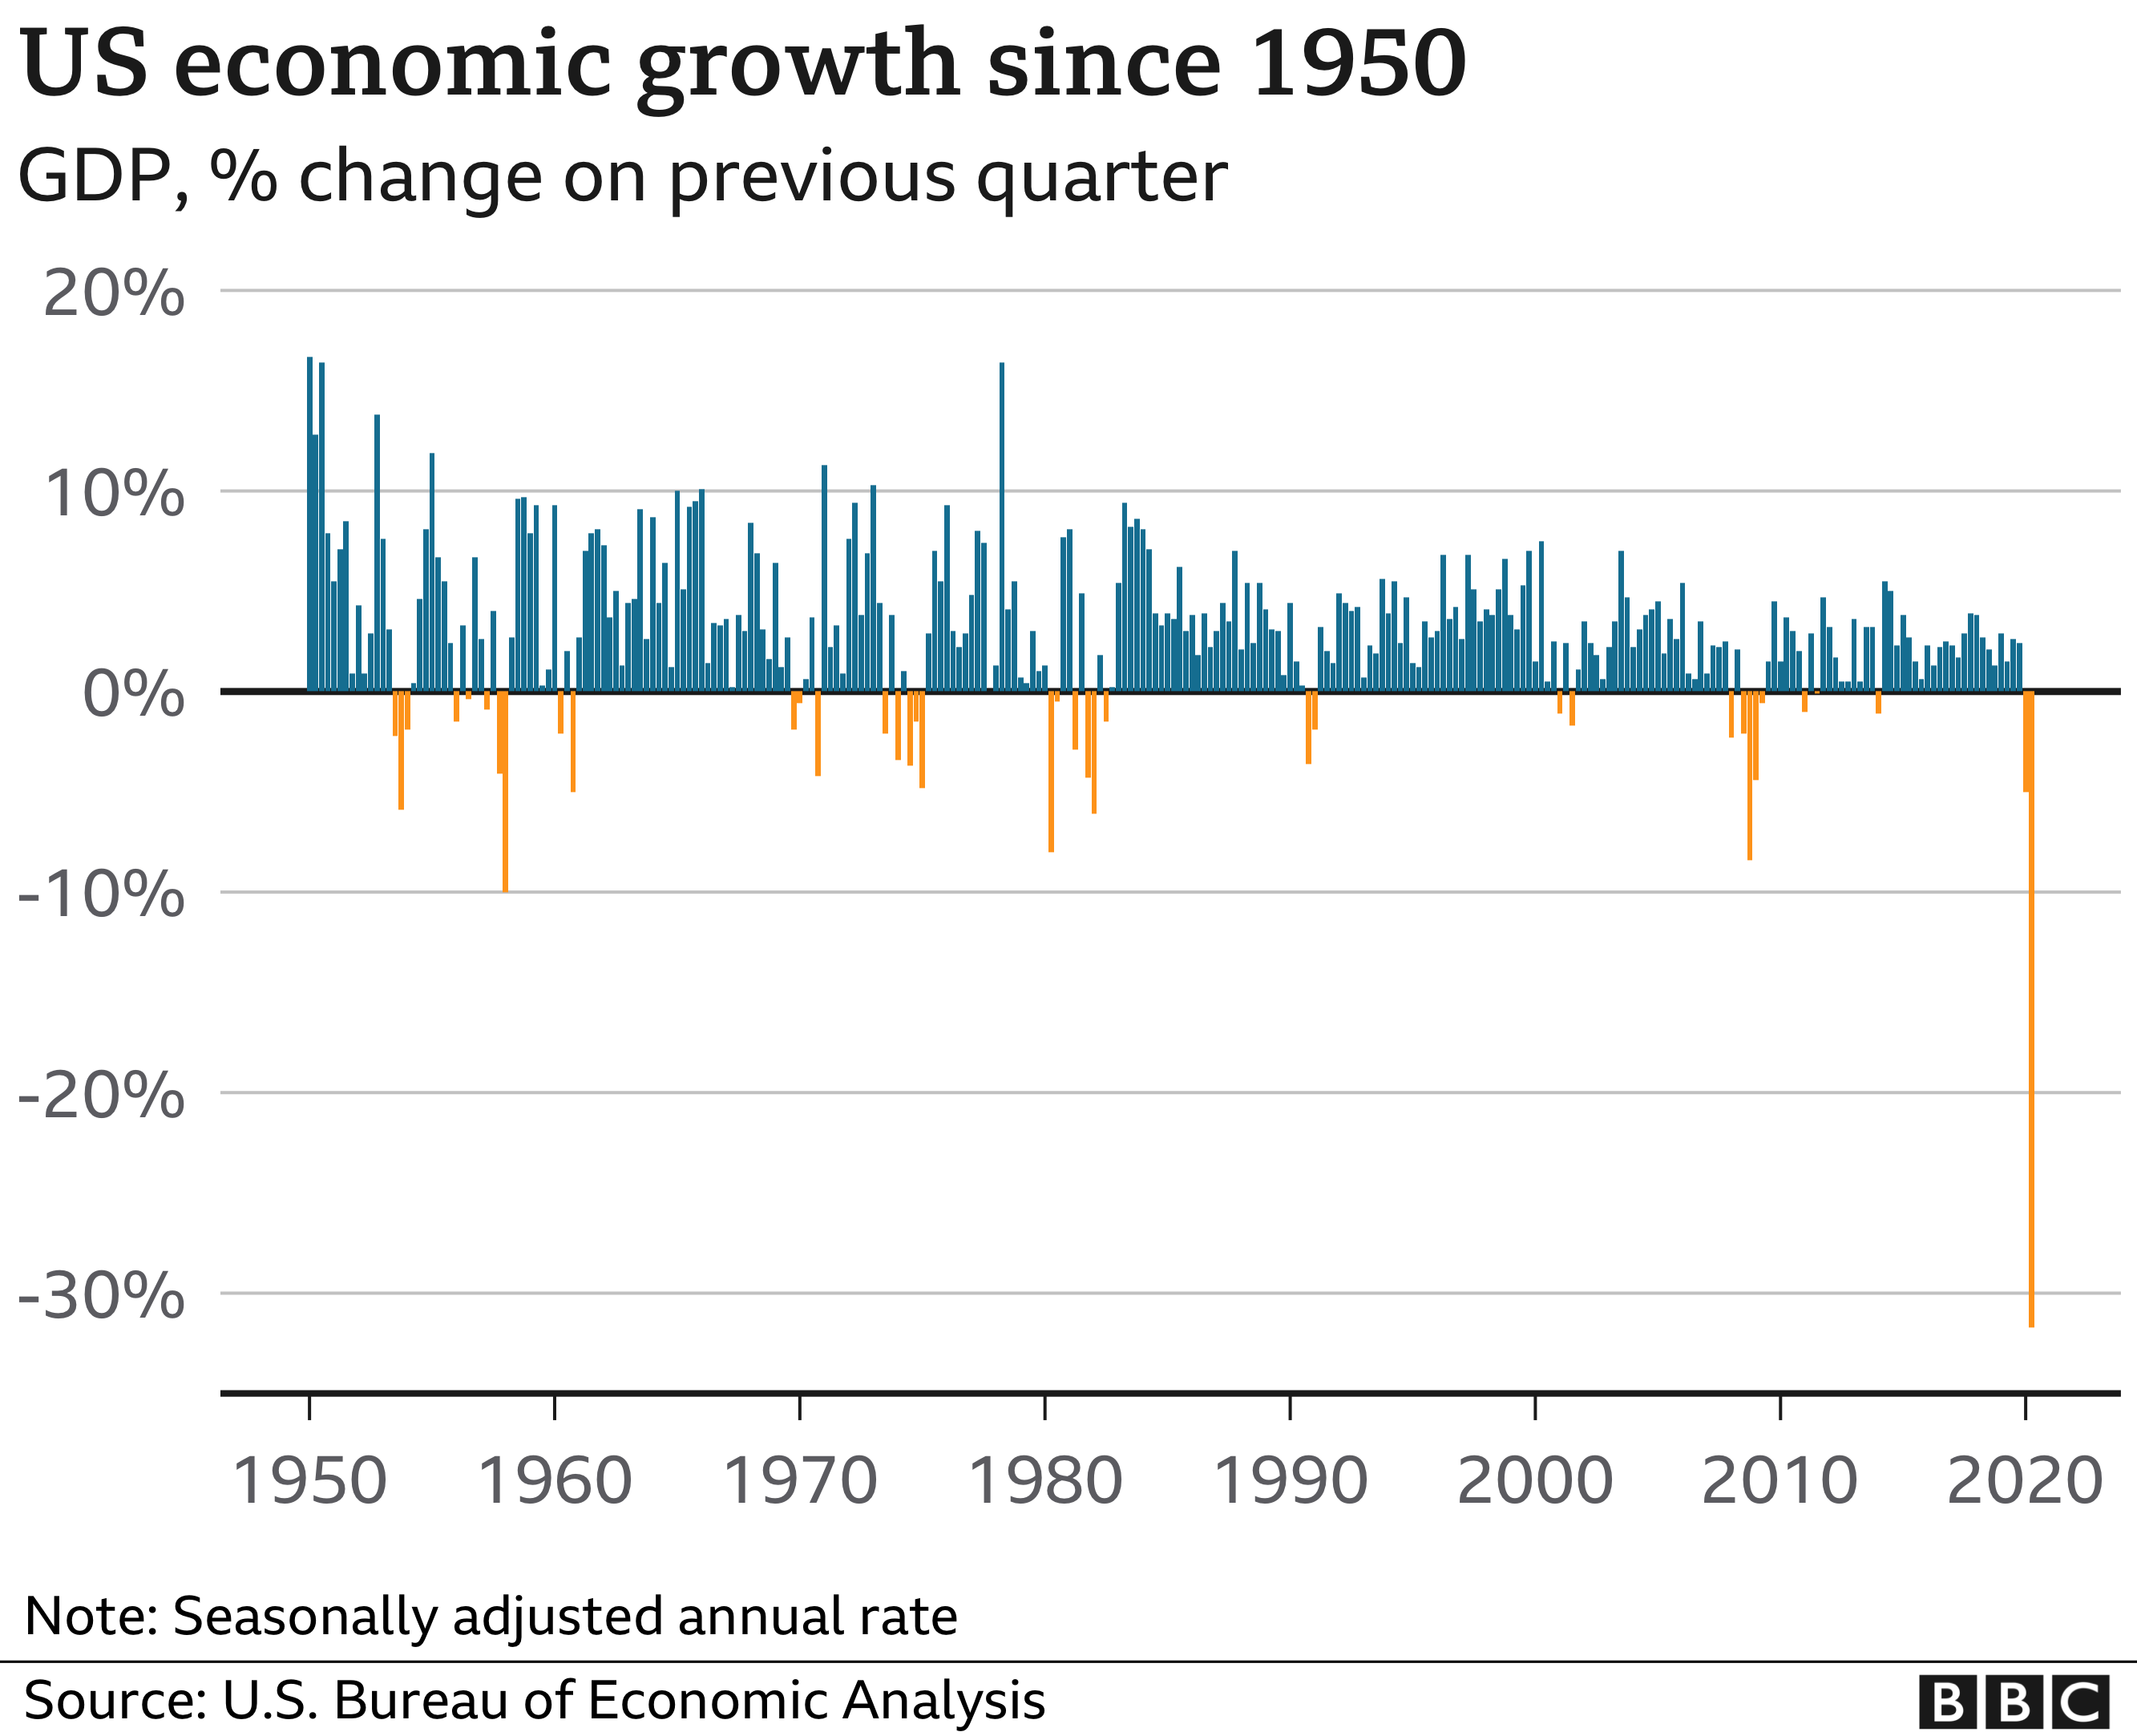 GDP growth since 1950s